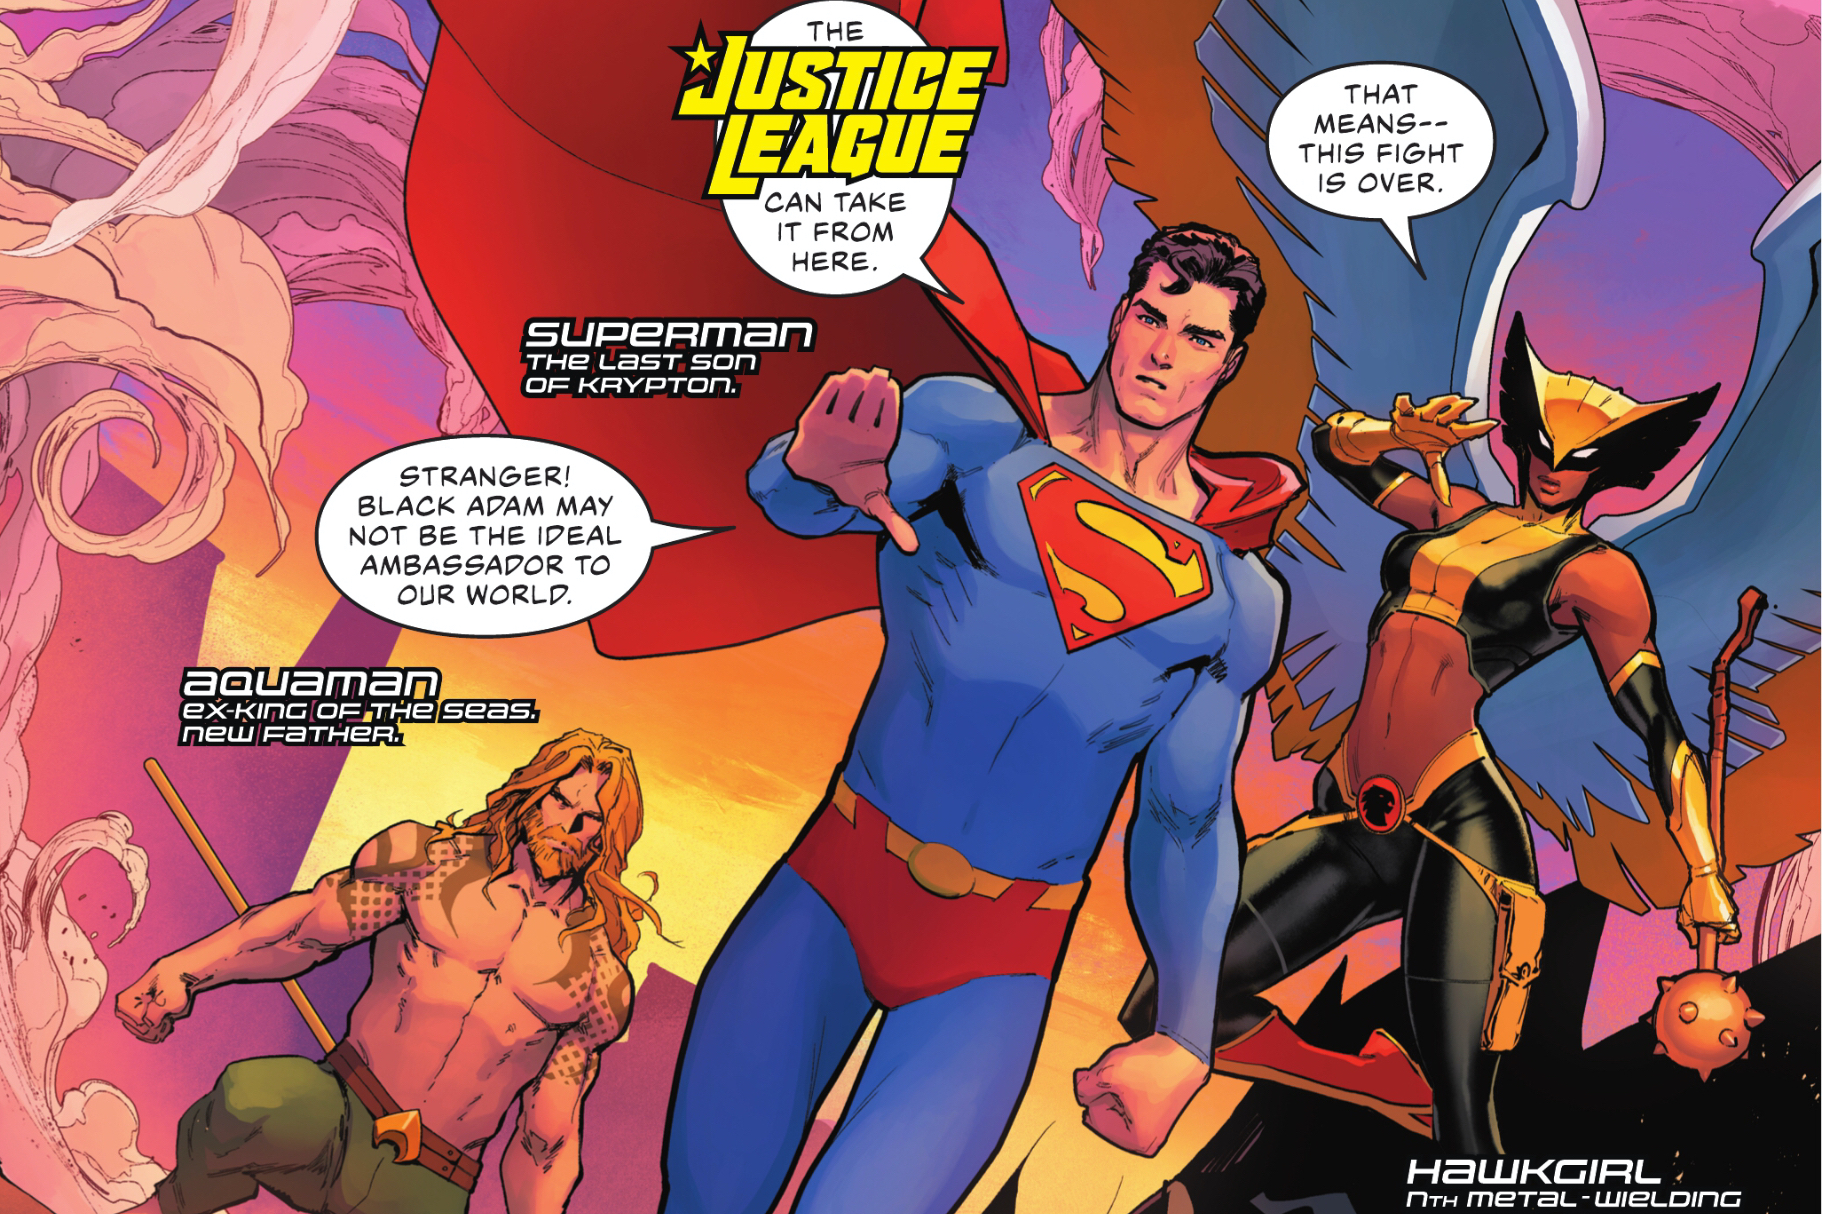 """""""The Justice League can take it from here,"""" Superman says as he, Hawkgirl, and Aquaman arrive on the scene in Justice League #59, DC Comics (2021)."""